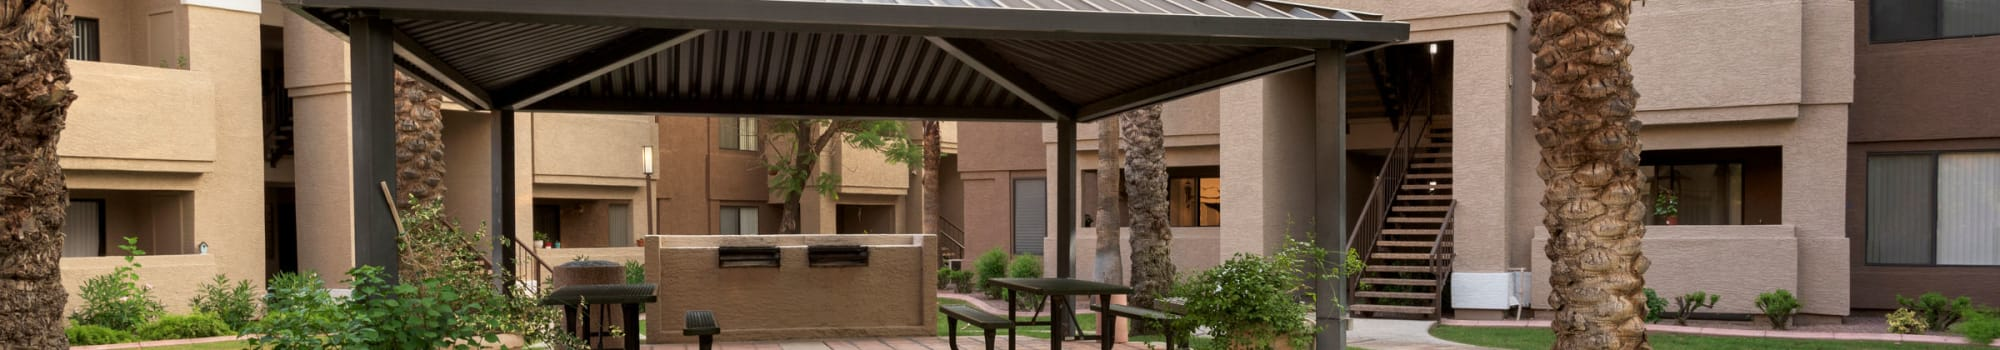 Amenities at The Palisades at Paradise Valley Mall in Phoenix, Arizona